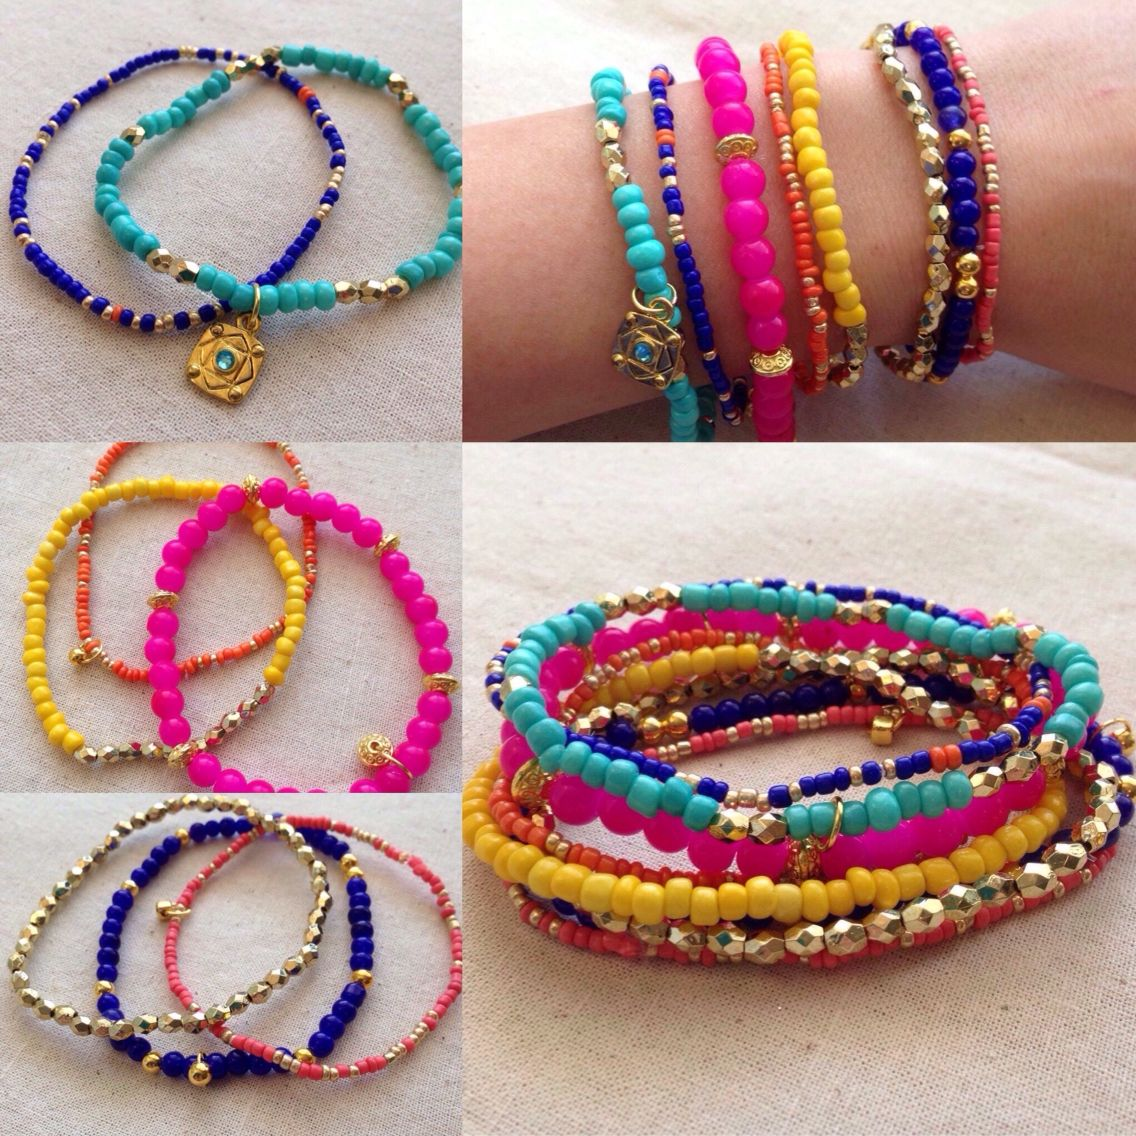 Get these beautiful and bright bracelets for an affordable price! The eight bracelets are strung on stretch cord with hot pink, royal blue, turquoise, yellow, orange and coral glass seed beads. Each bracelet is accented with a small charm.